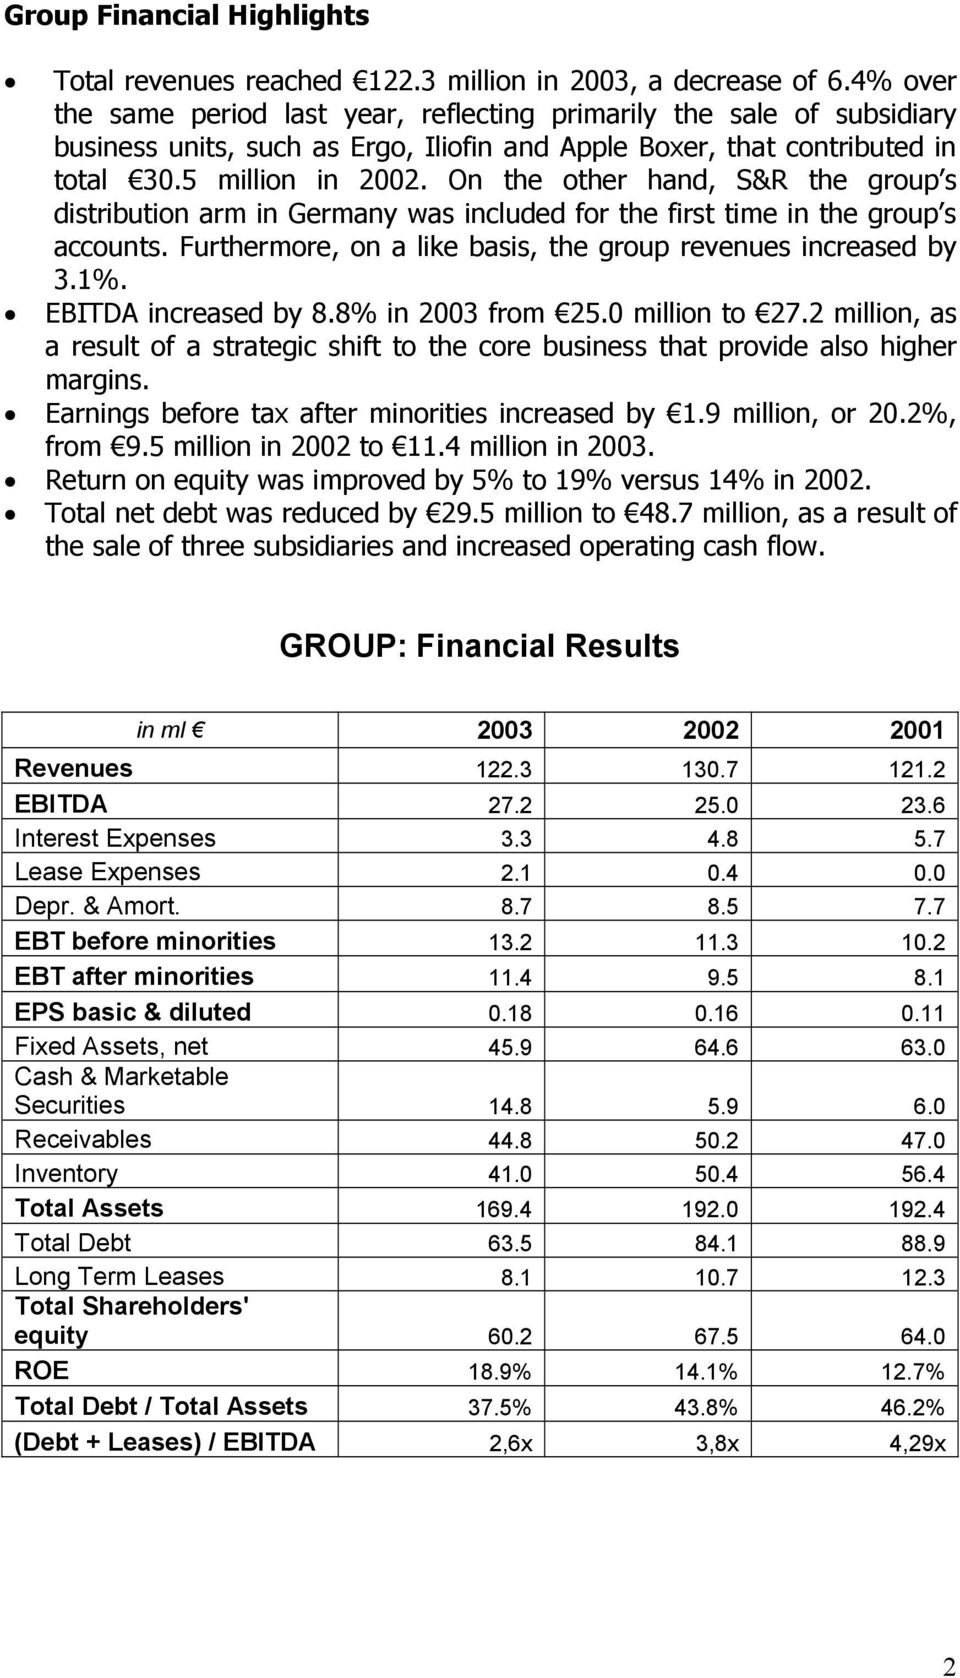 On the other hand, S&R the group s distribution arm in Germany was included for the first time in the group s accounts. Furthermore, on a like basis, the group revenues increased by 3.1%.